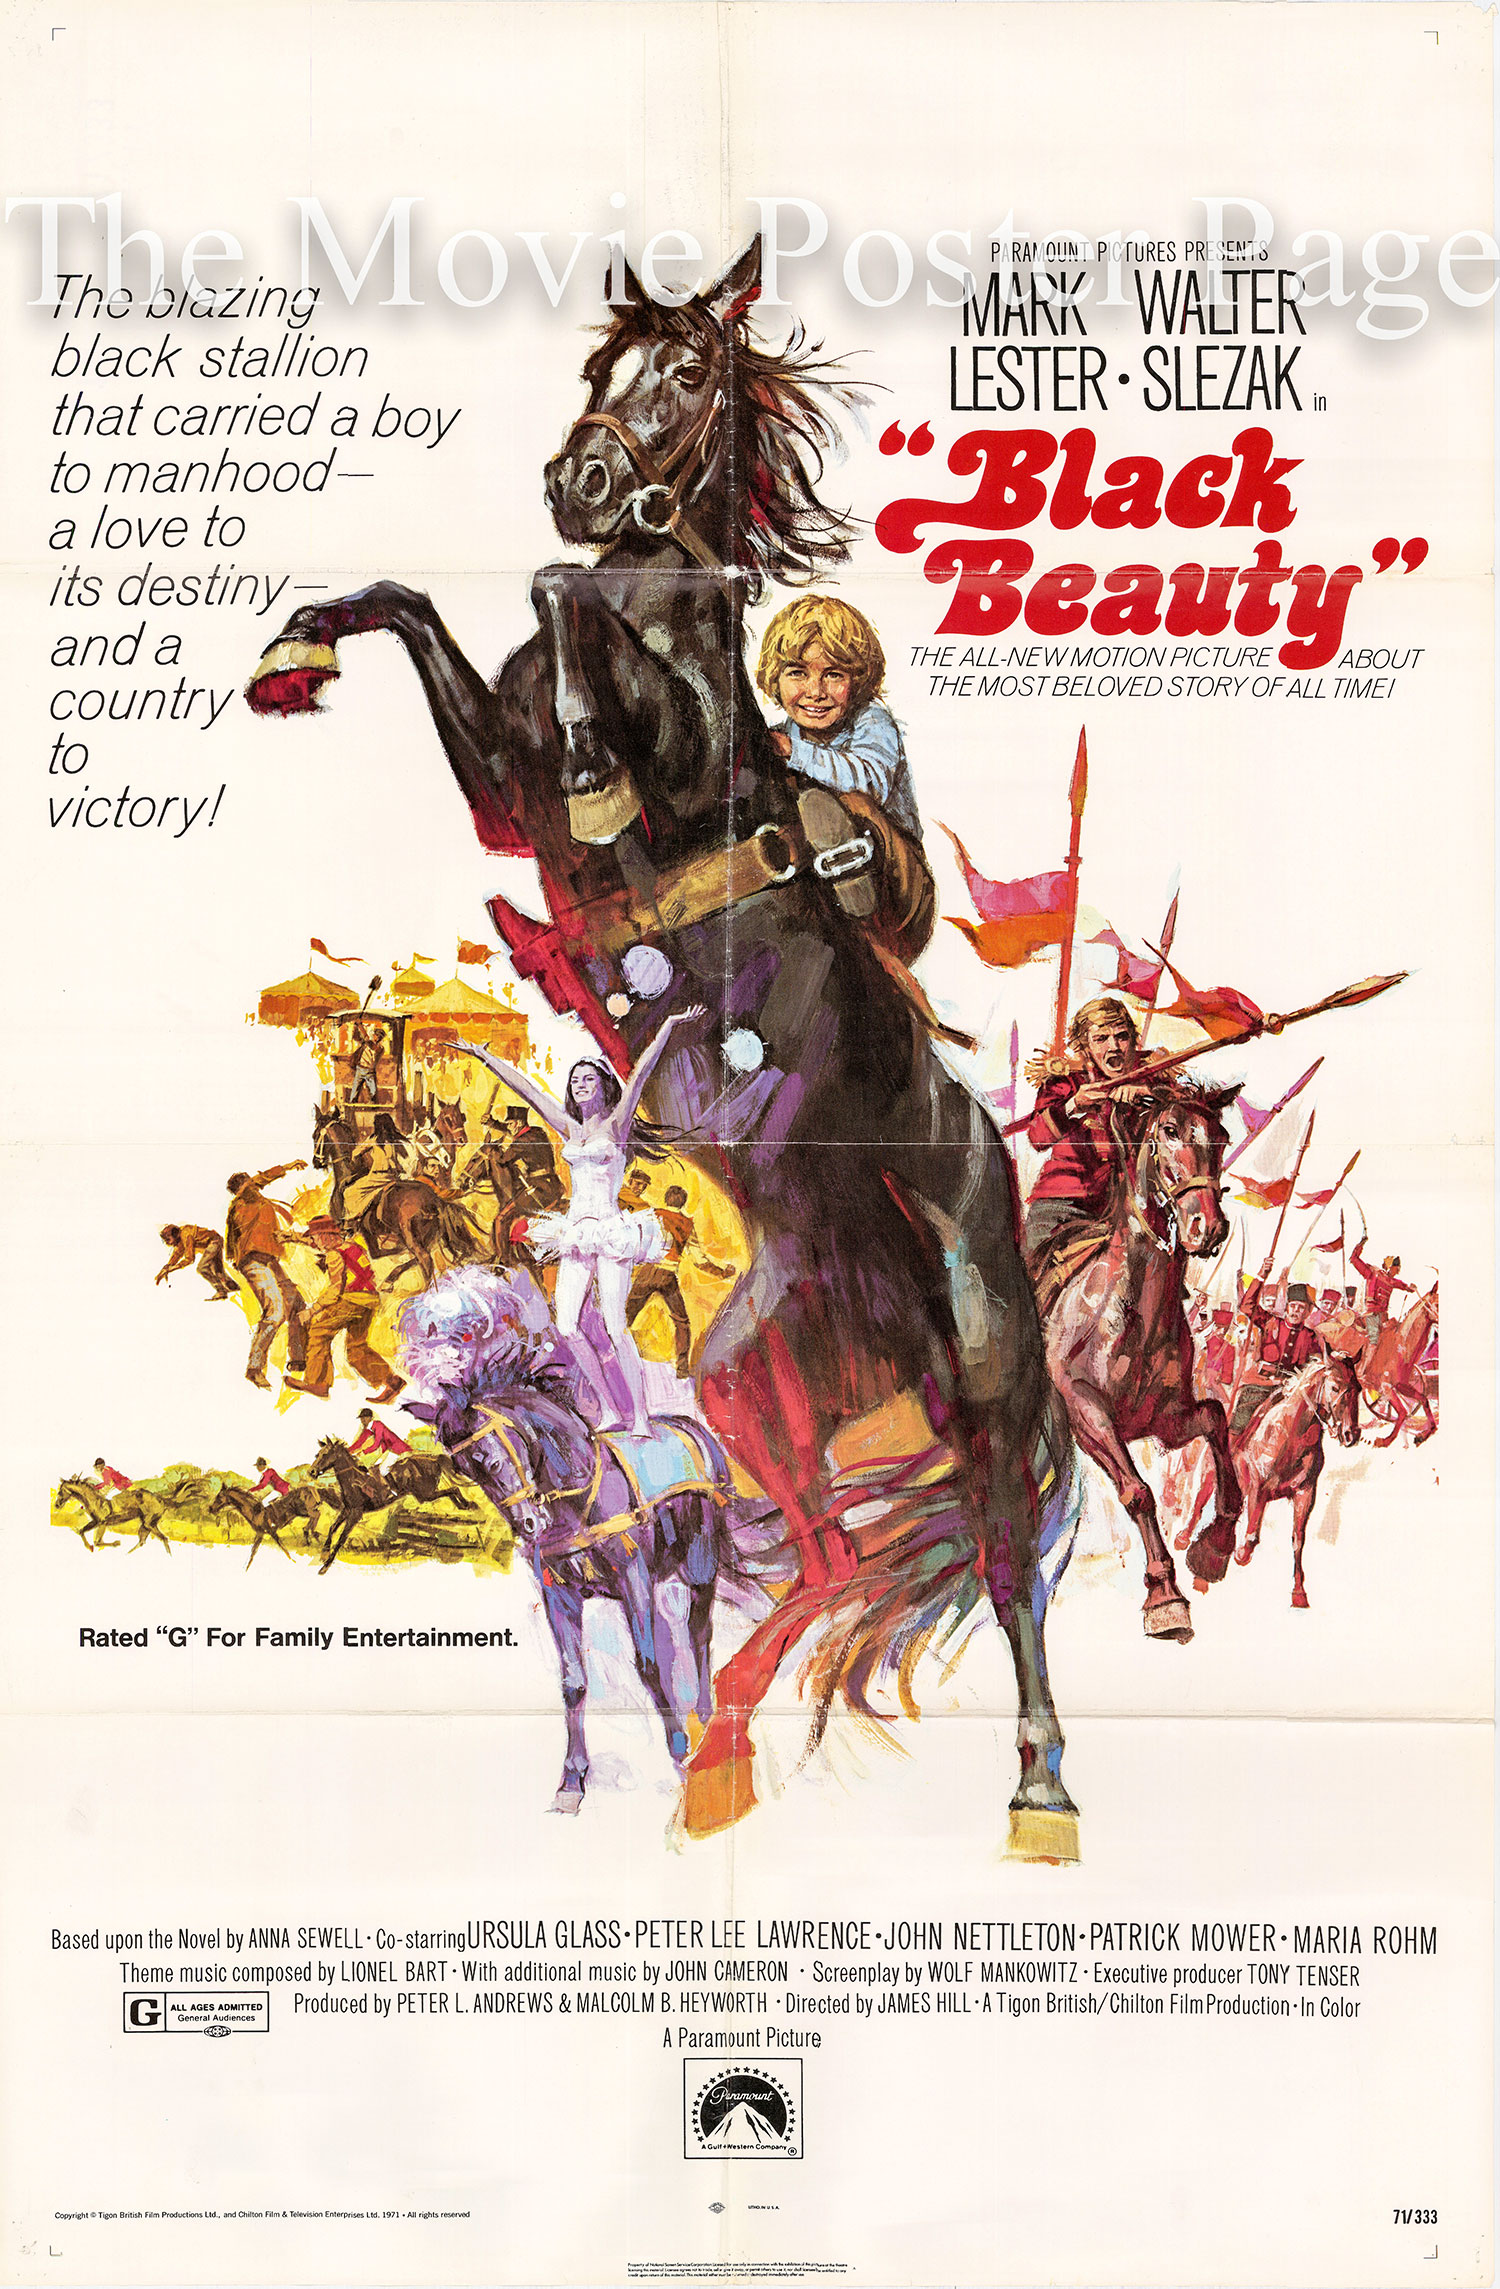 Pictured is a US one-sheet promotional poster for the 1971 James Hill film Black Beauty starring Mark Lester.